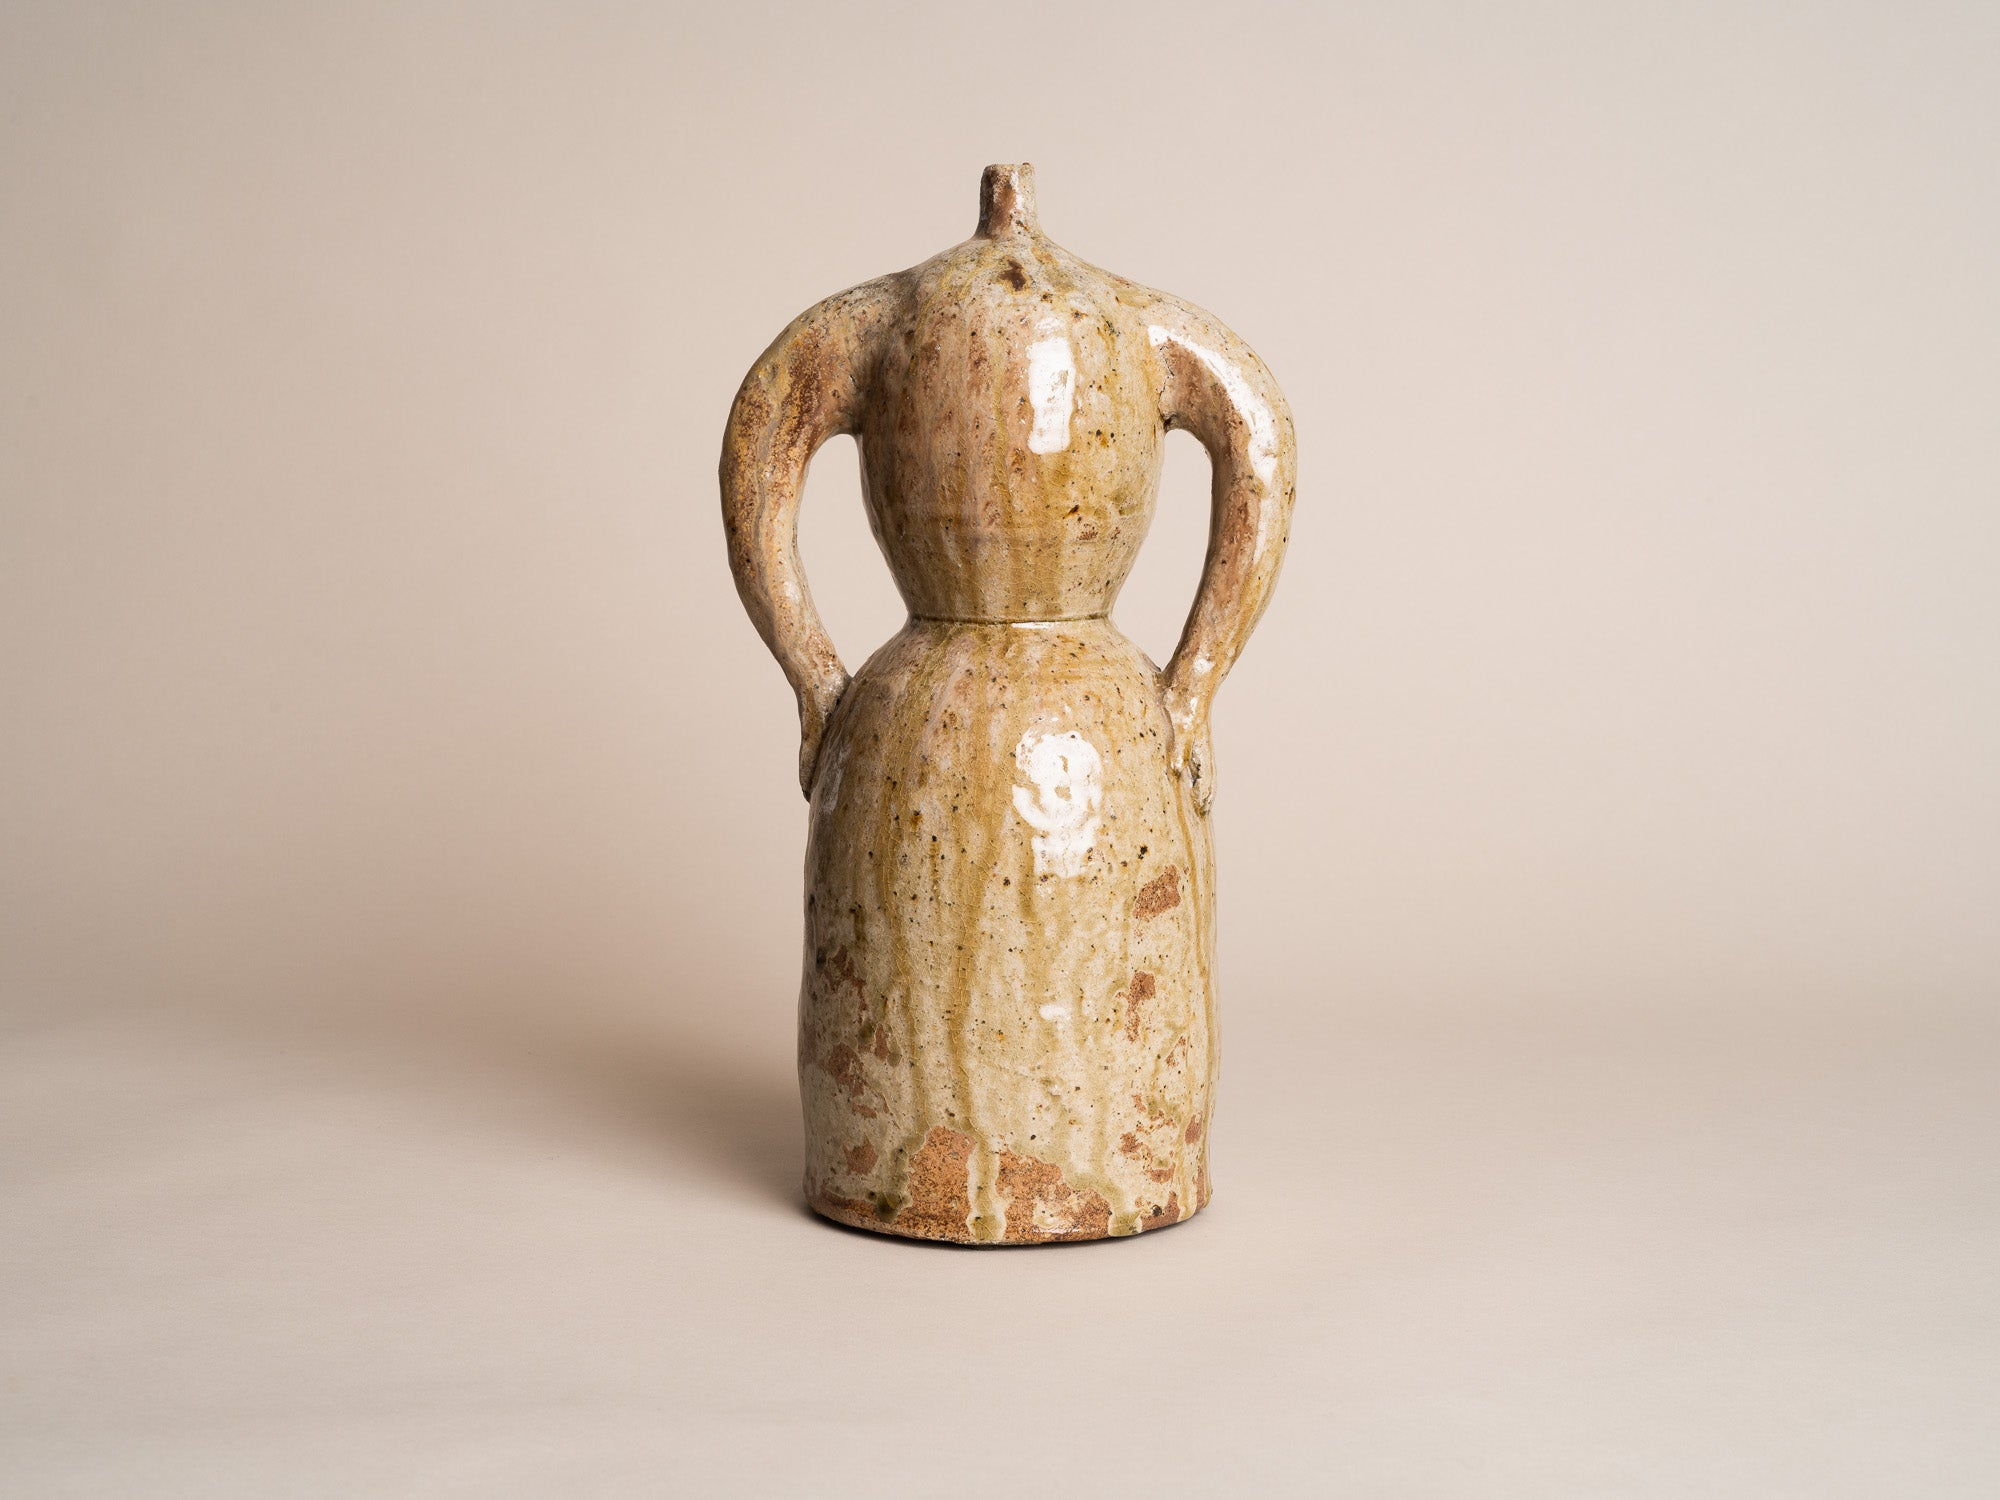 Rare sculpture‑bouteille anthropomorphe en grès de La Borne par Guy Bernon, France (vers 1960)..Anthropomorphic La Borne stoneware sculptural bottle by Guy Bernon, France (circa 1960)